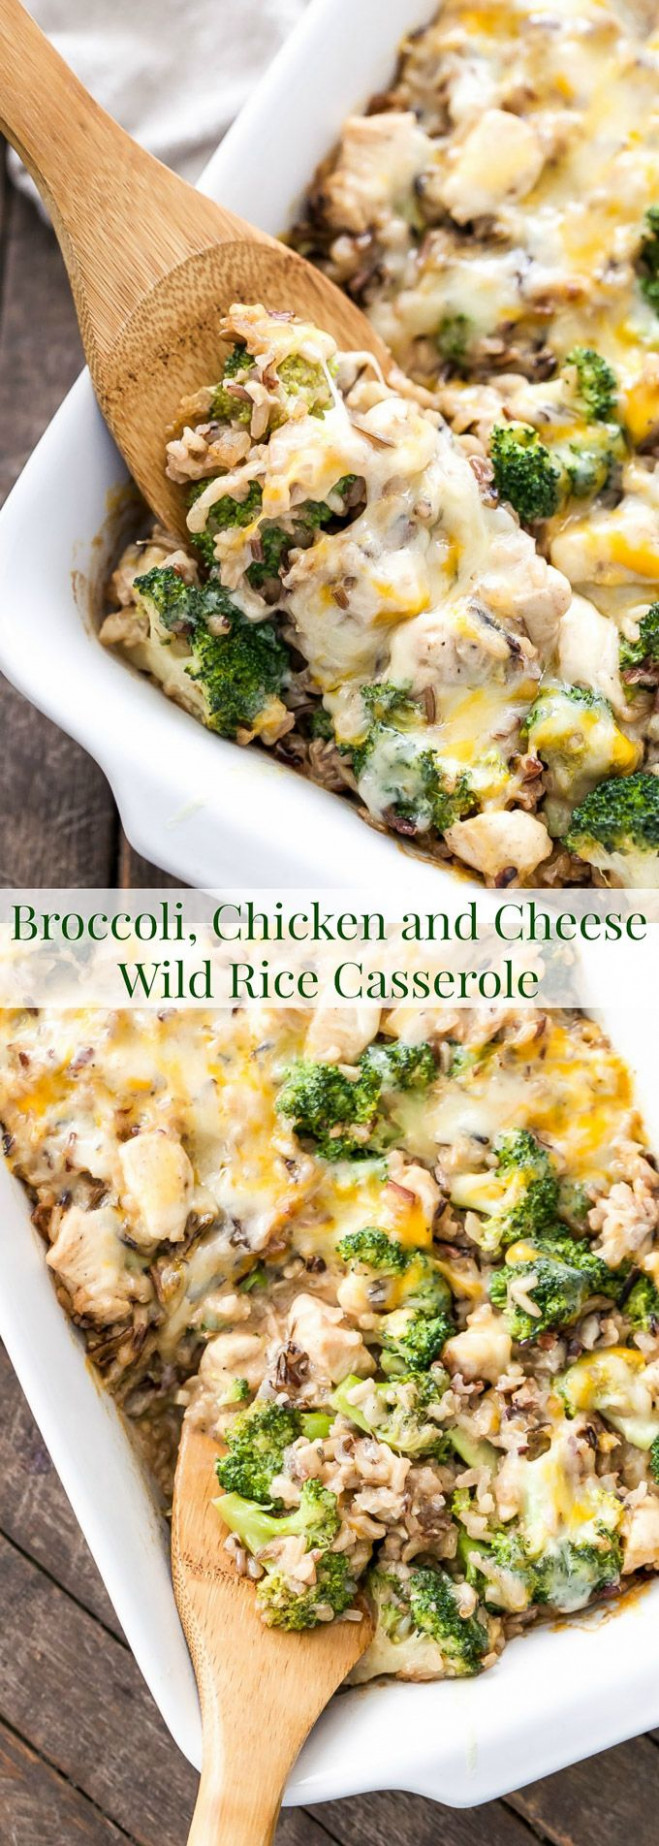 1000+ ideas about Chicken Casserole on Pinterest ...